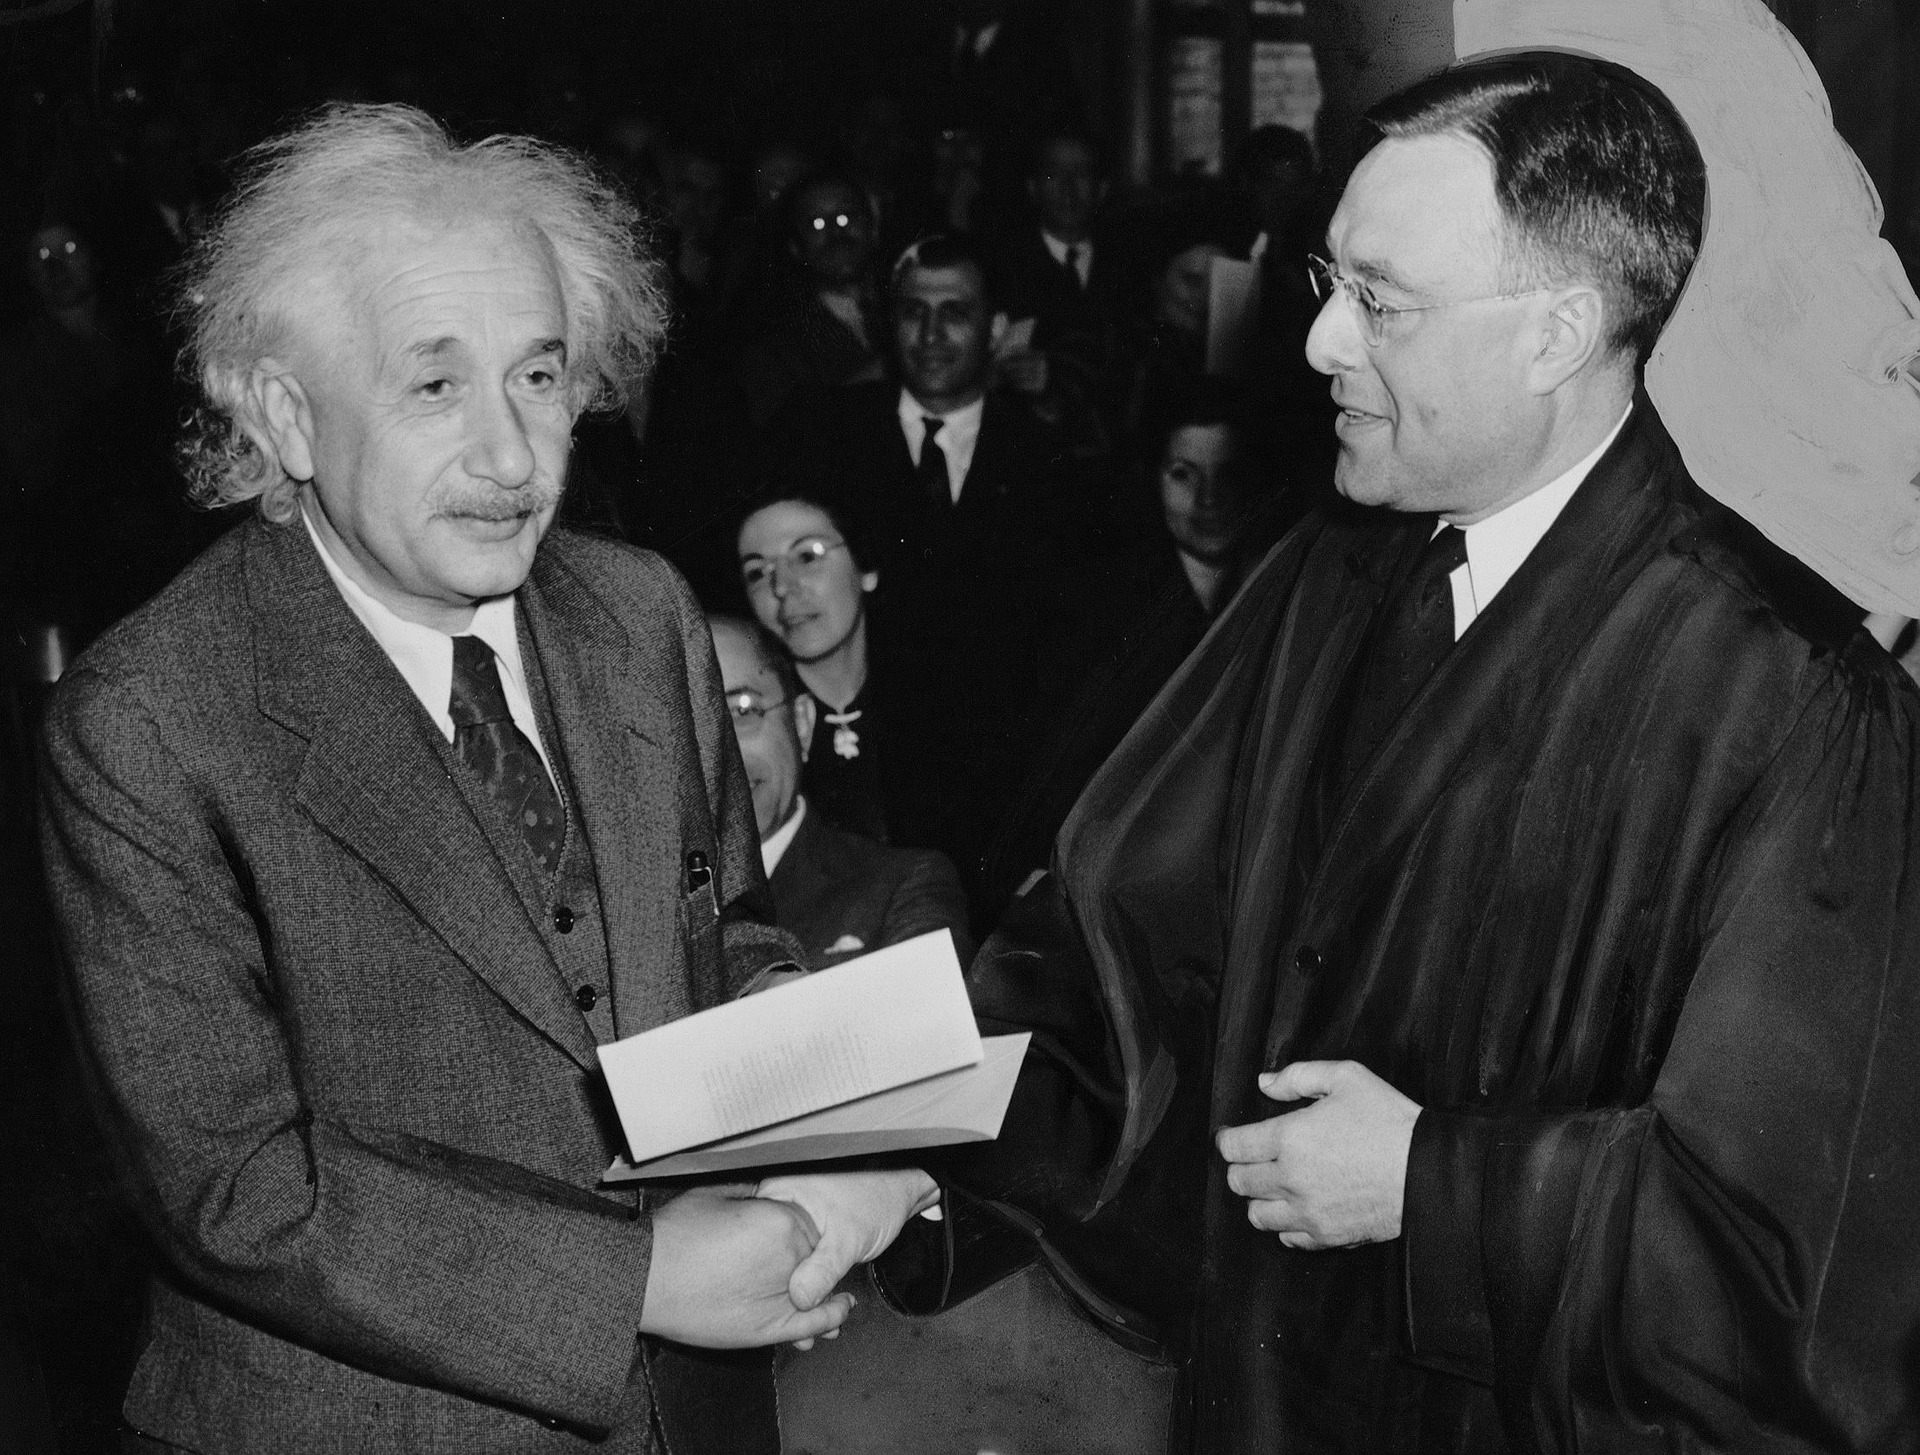 Albert Einstein and Philip Forman